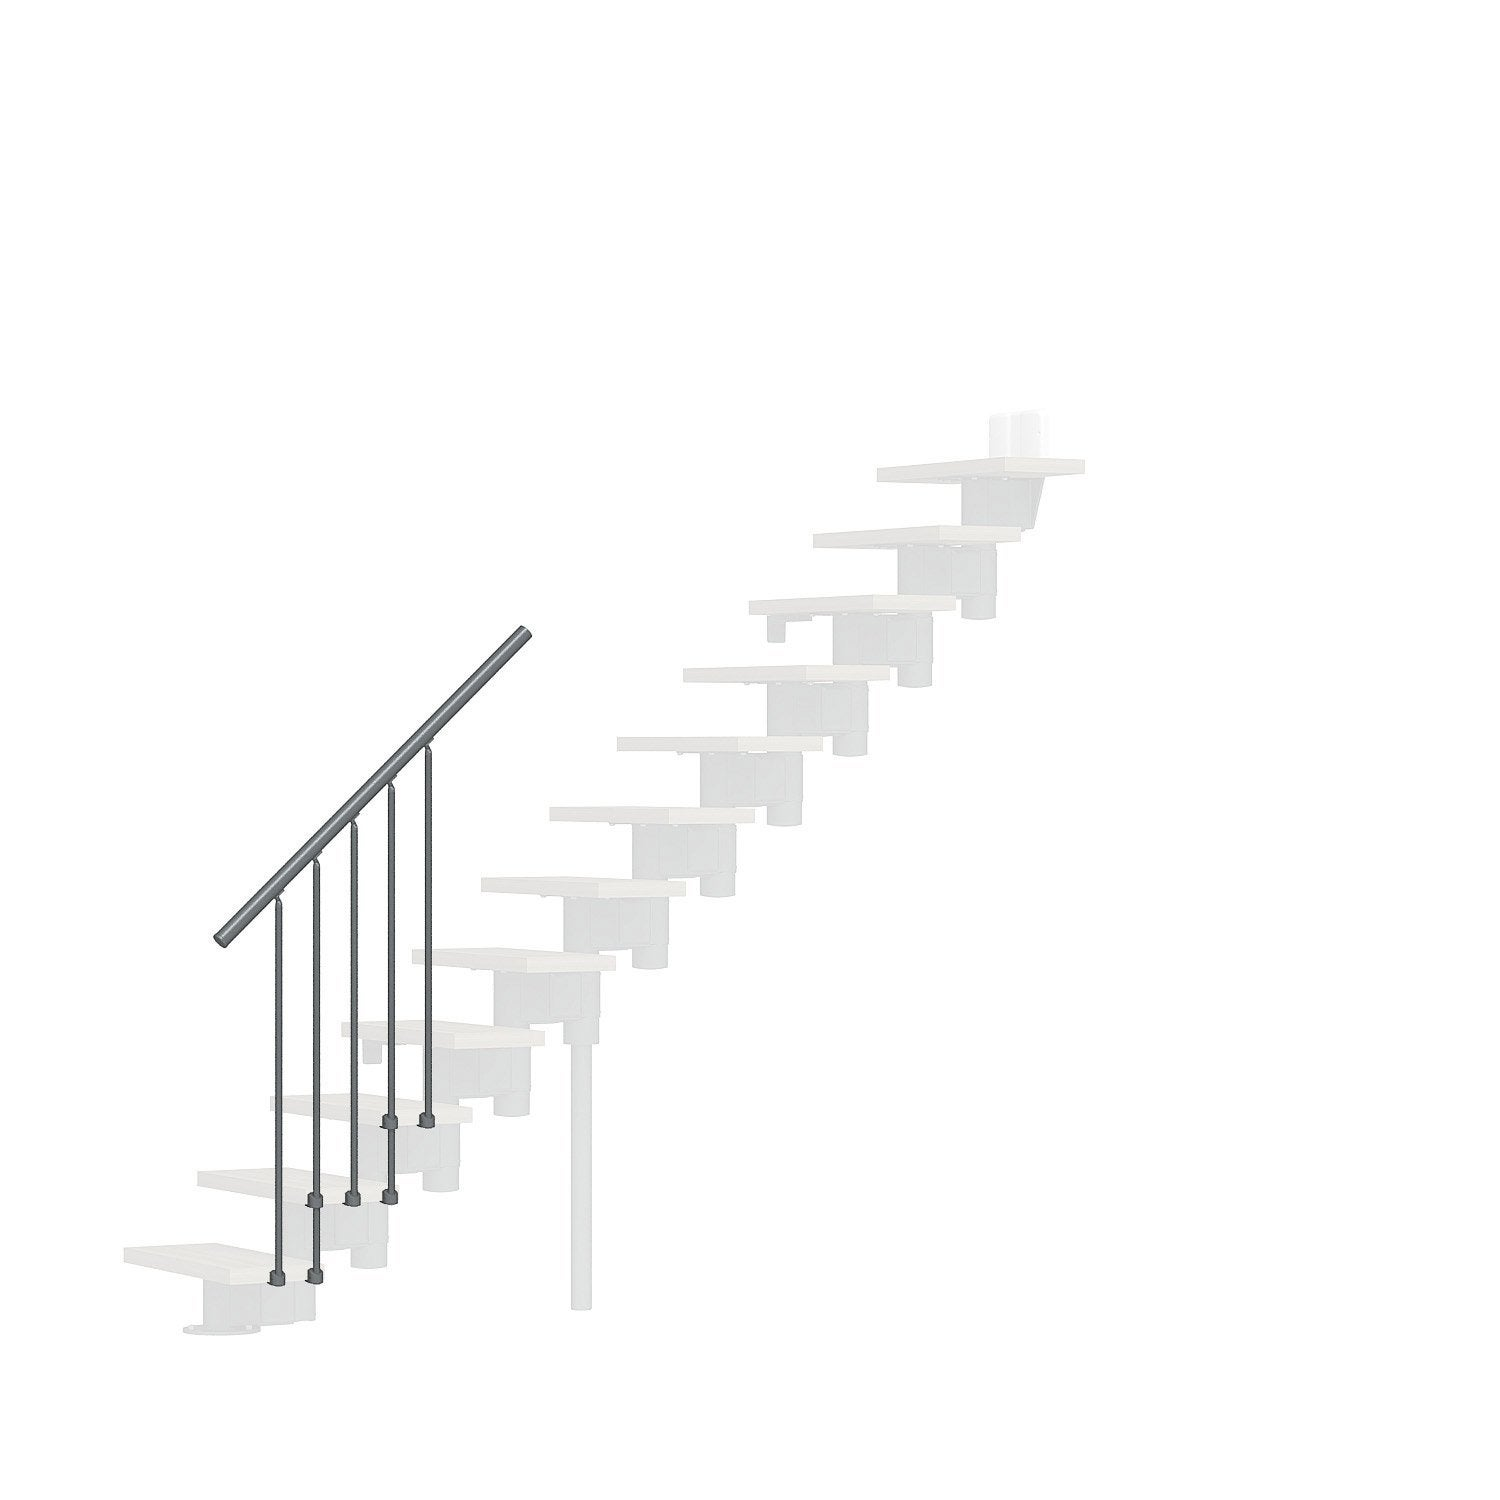 Garde corps suppl mentaire pour escalier long leroy merlin - Garde corps leroy merlin ...